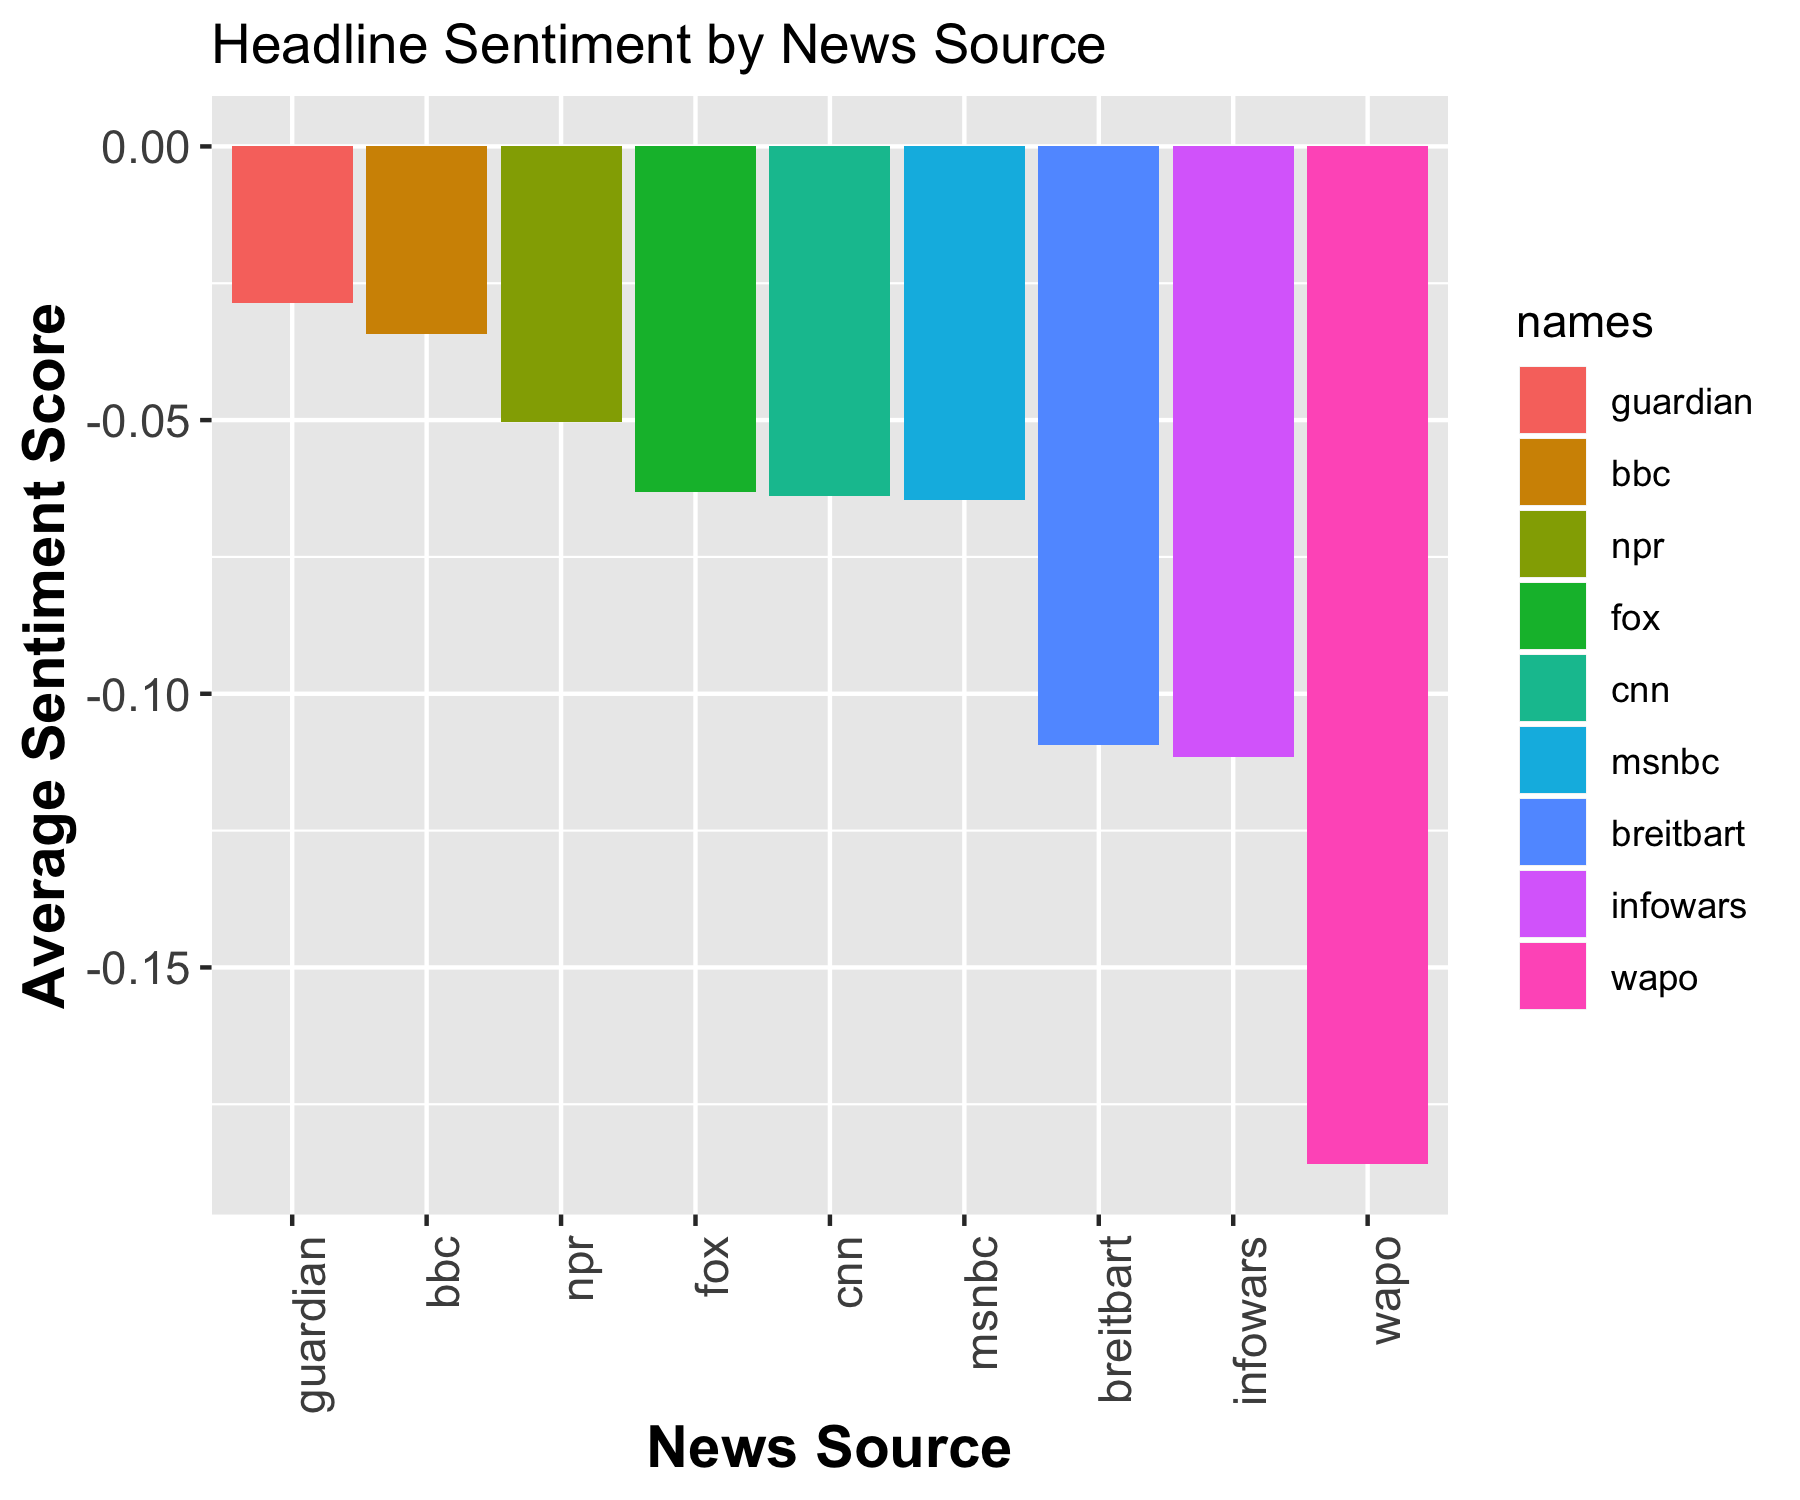 How Does News Coverage Differ Between Media Outlets?